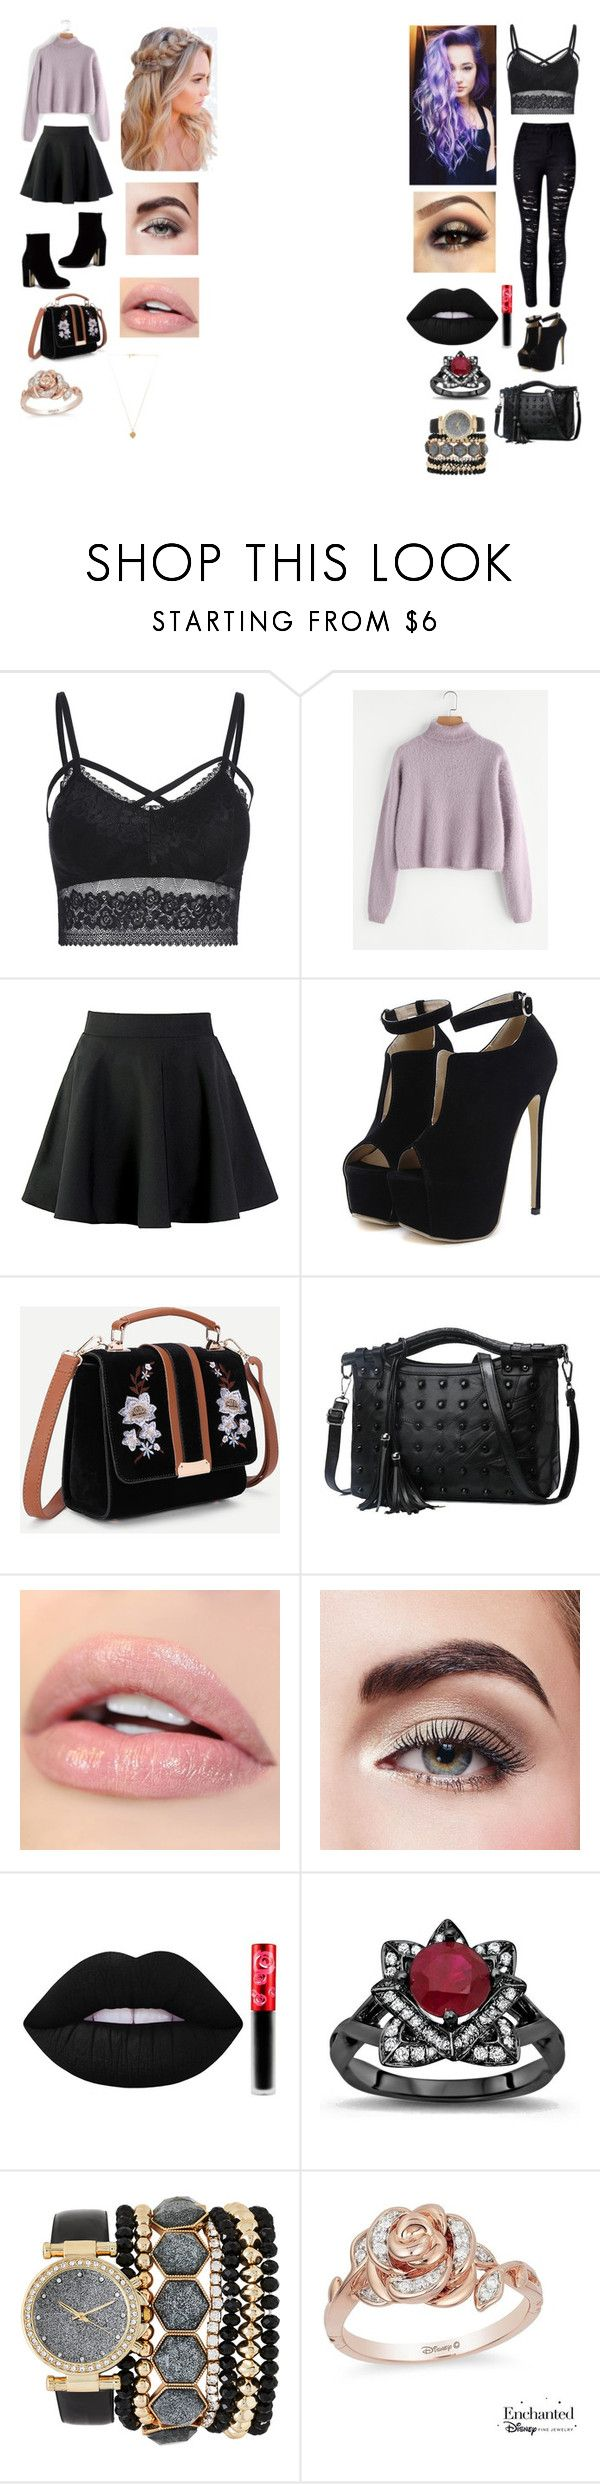 """""""The two types of people! 😇😈"""" by annieswaytoday on Polyvore featuring WithChic, Avon, Lime Crime, Jessica Carlyle, Disney and Vanessa Mooney"""